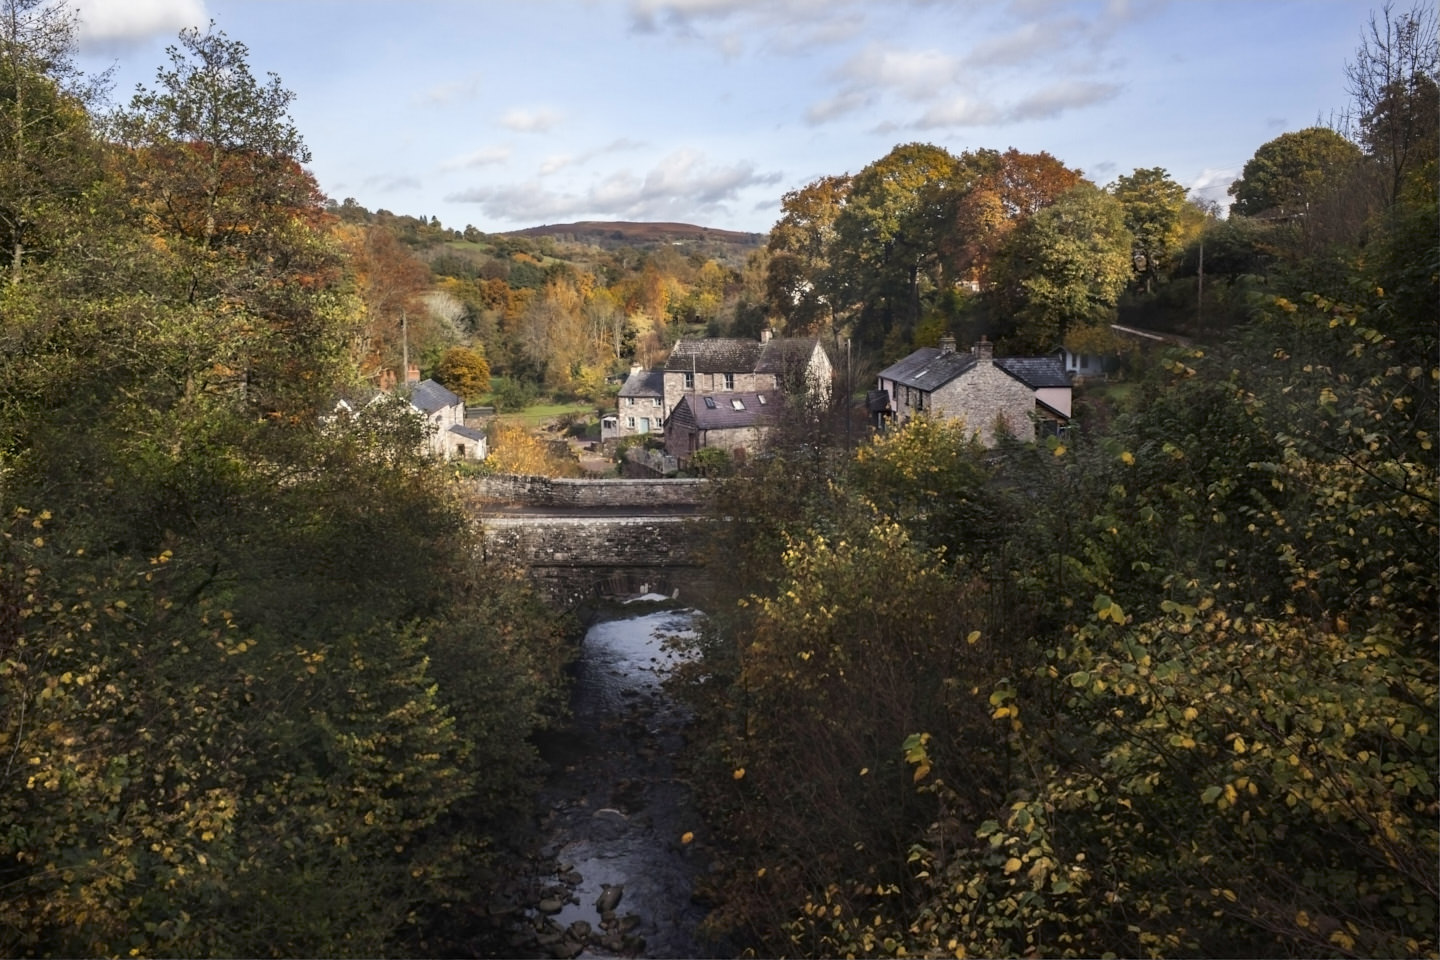 A bridge over Llangynidr and its dainty houses, ringed by autumn foliage.